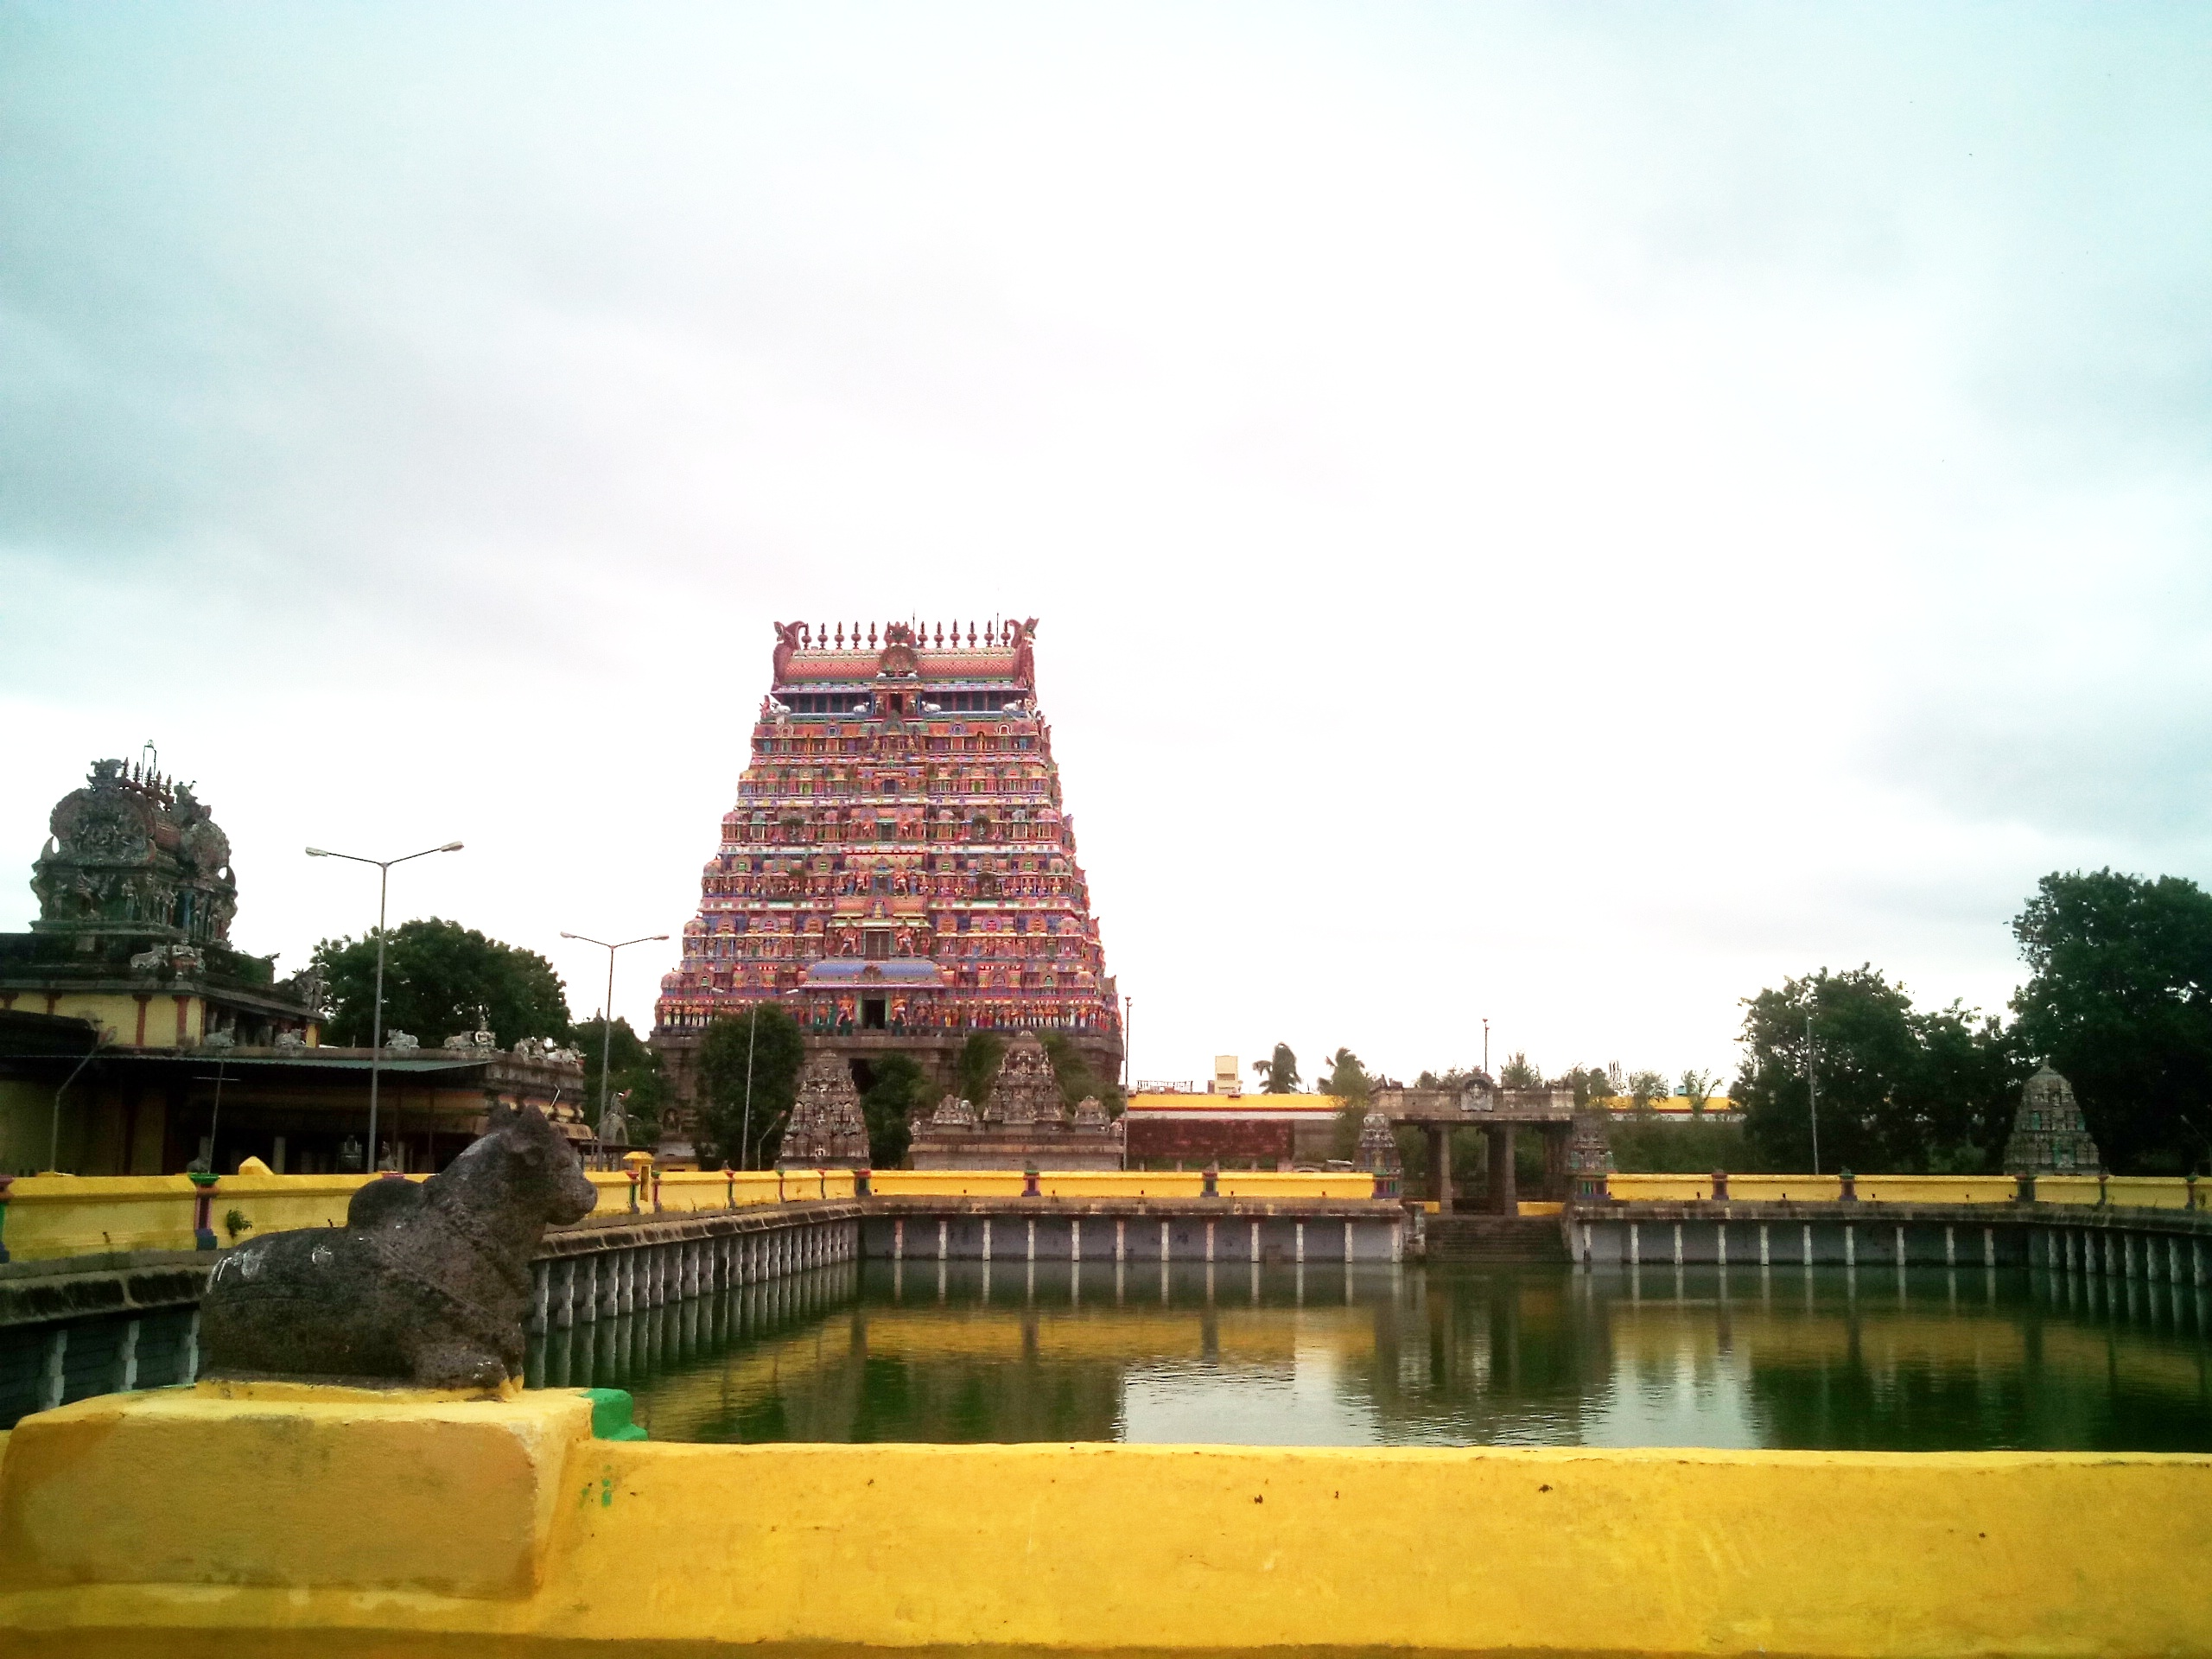 One of the temple gopurams and the holy Sivaganga tank